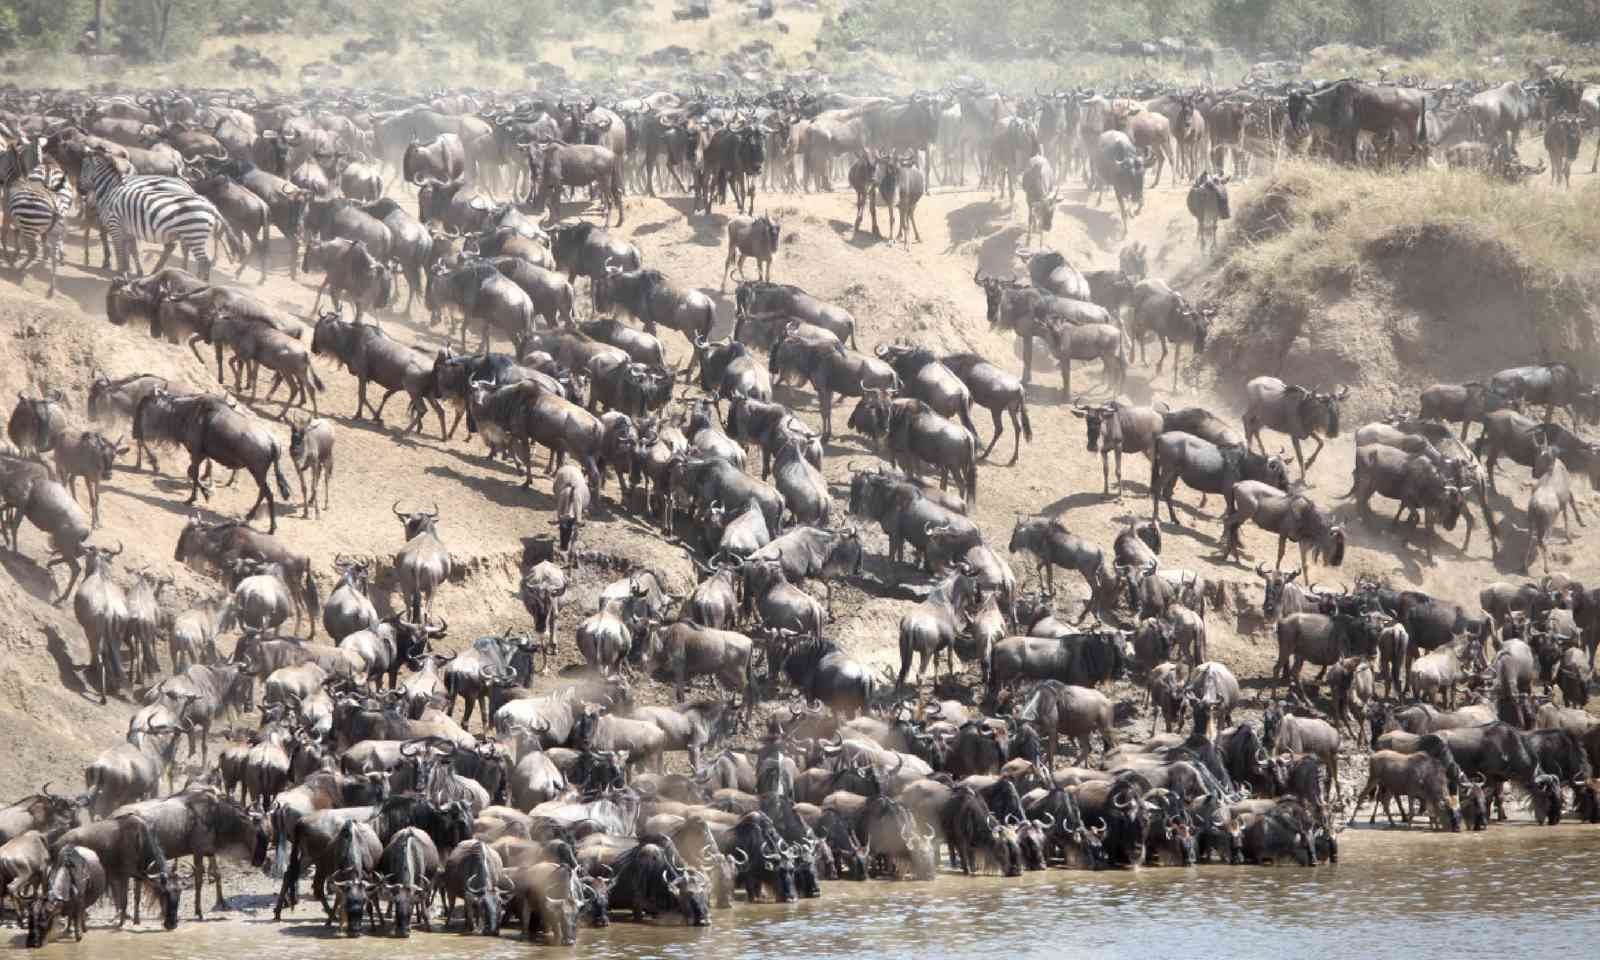 Wildebeest in the Masai Mara (Shutterstock)